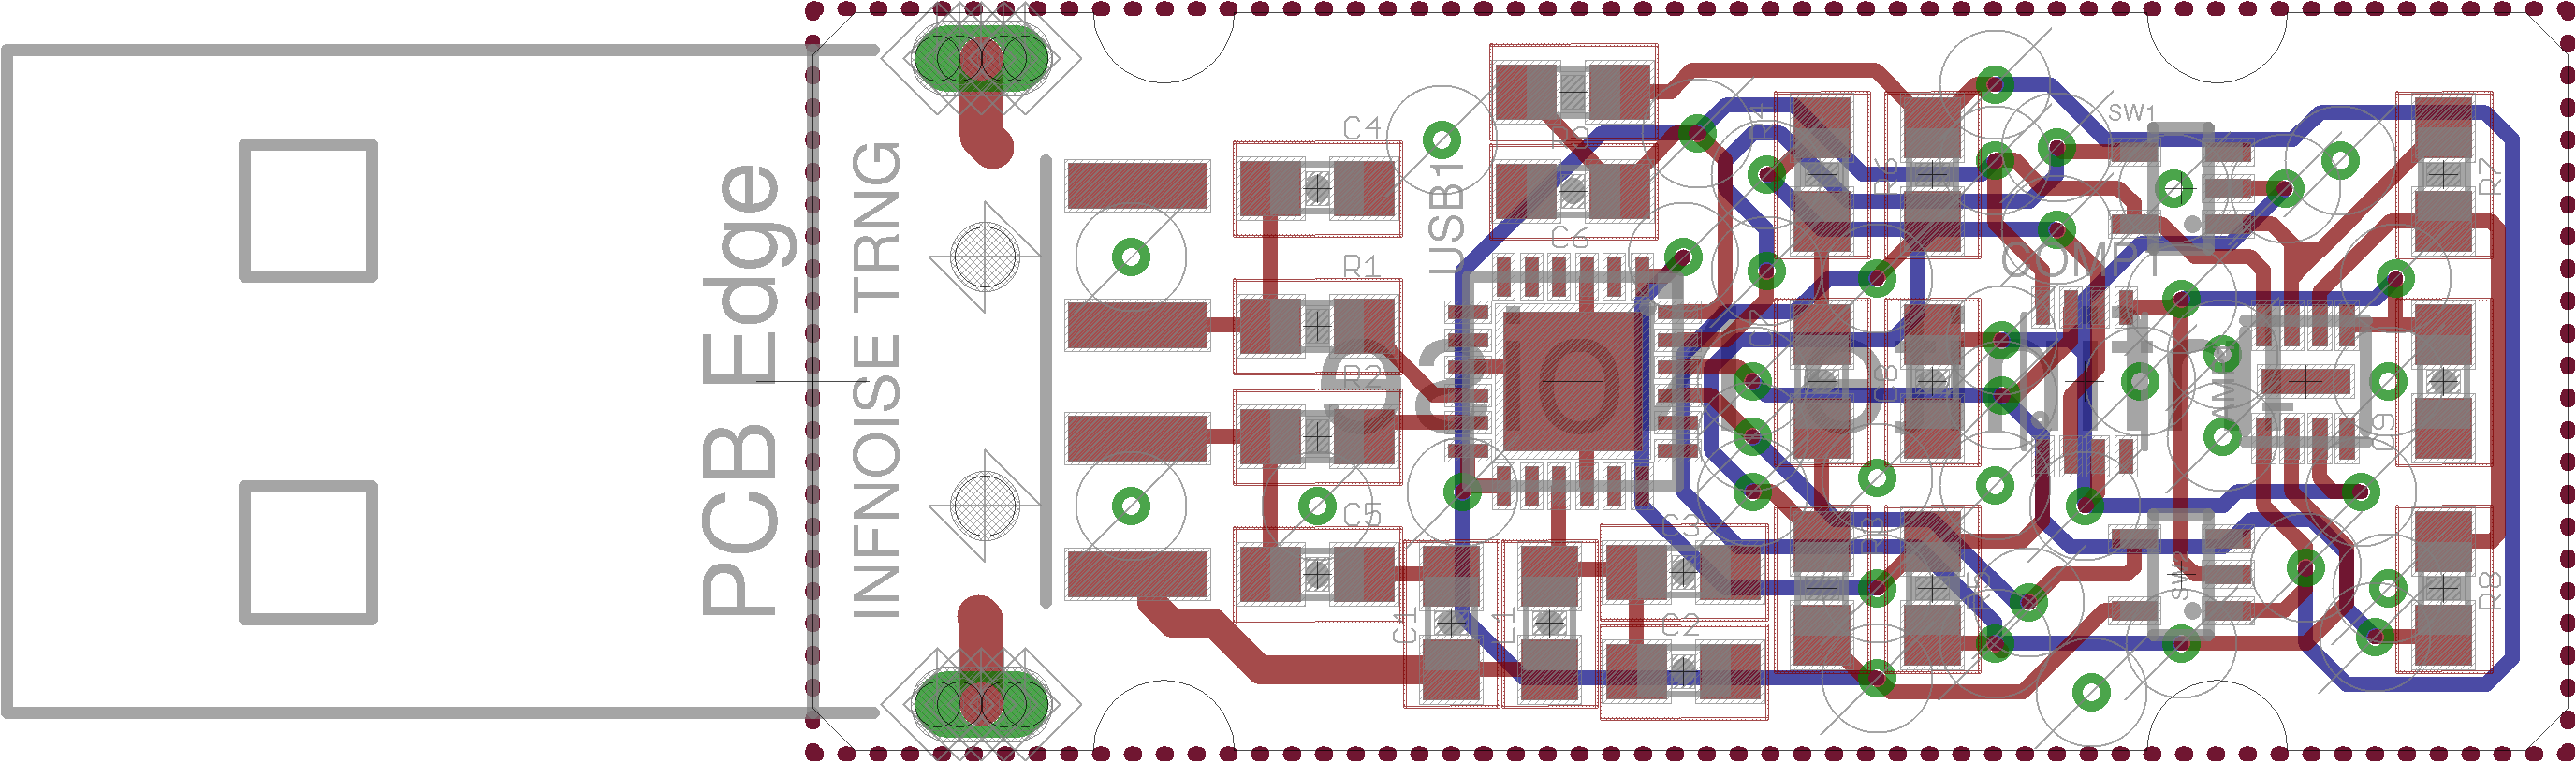 Board layout of Infinite Noise Multiplier